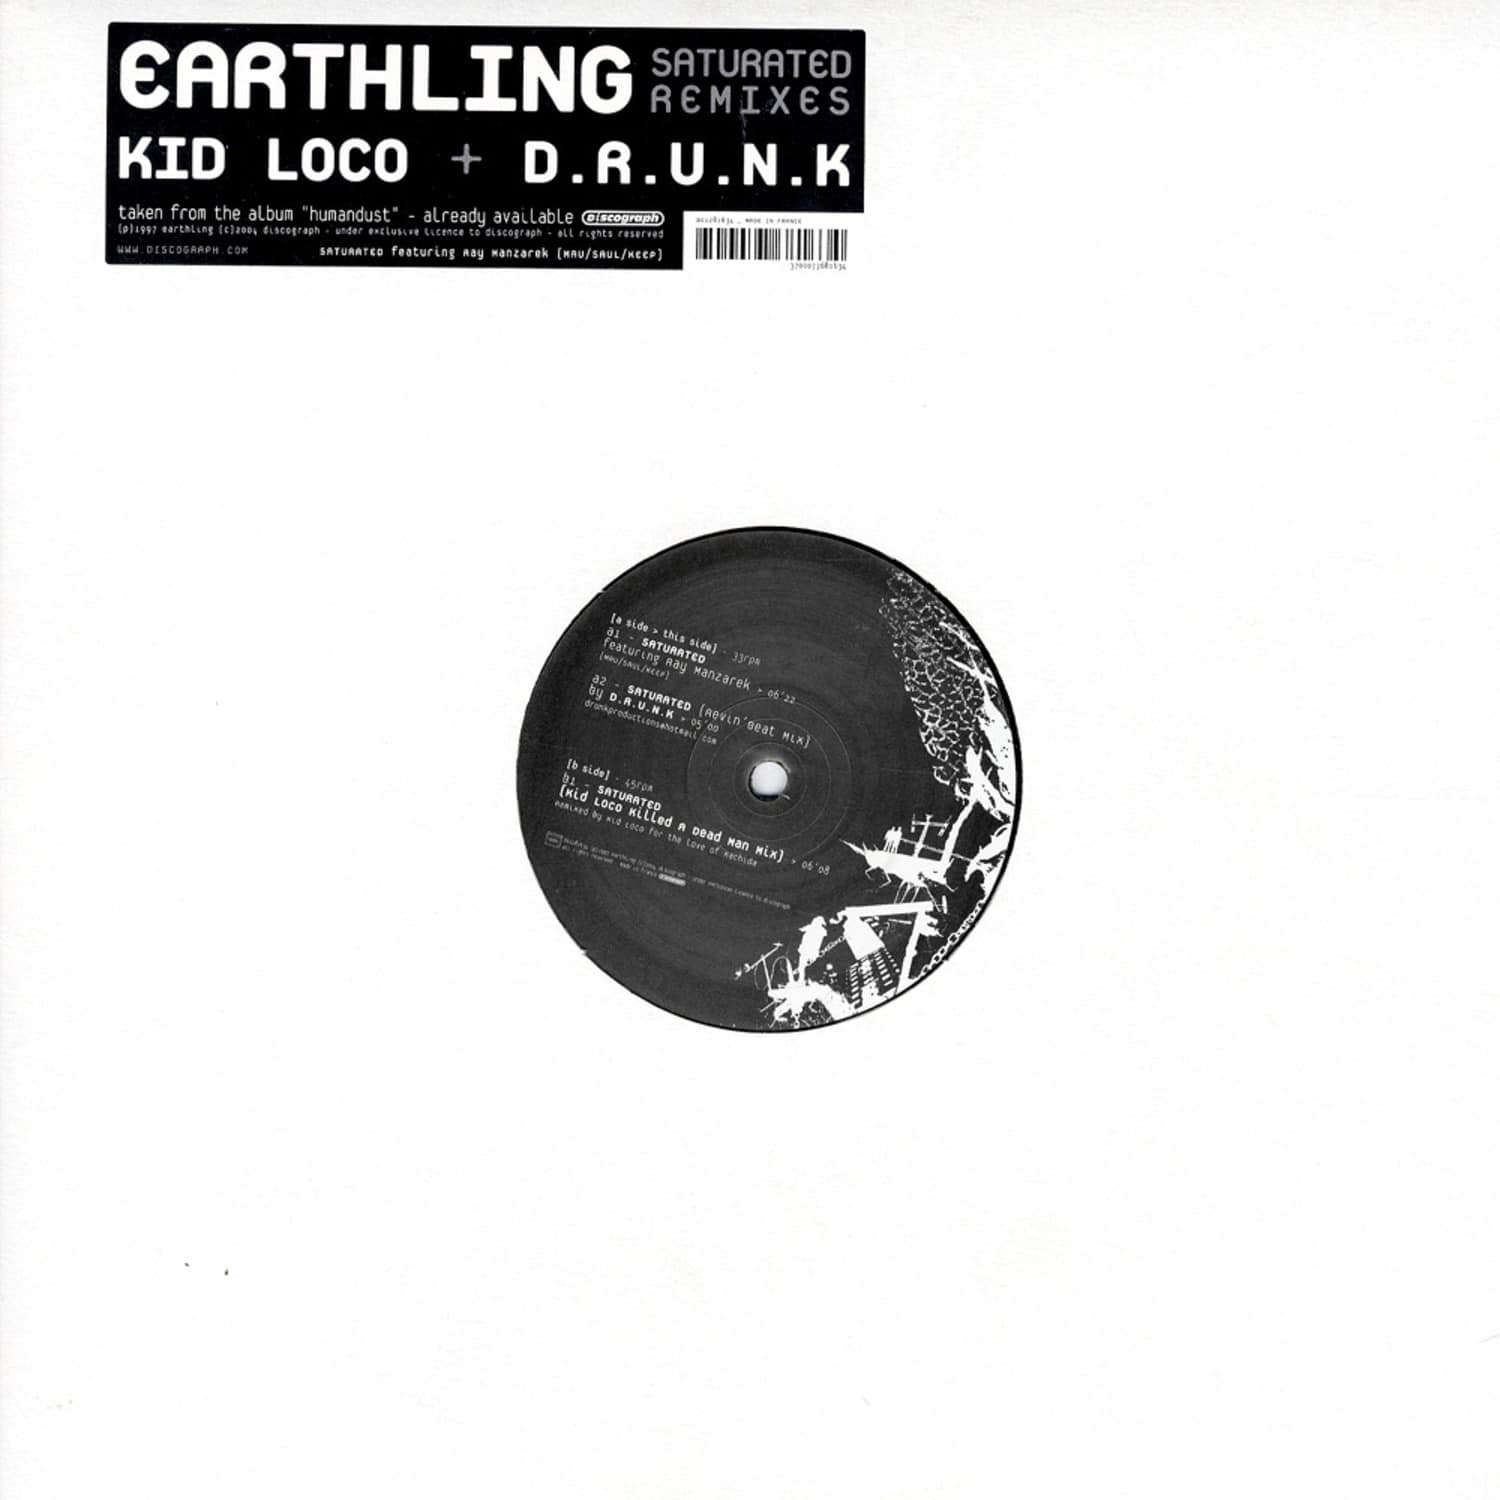 Earthling - SATURATED